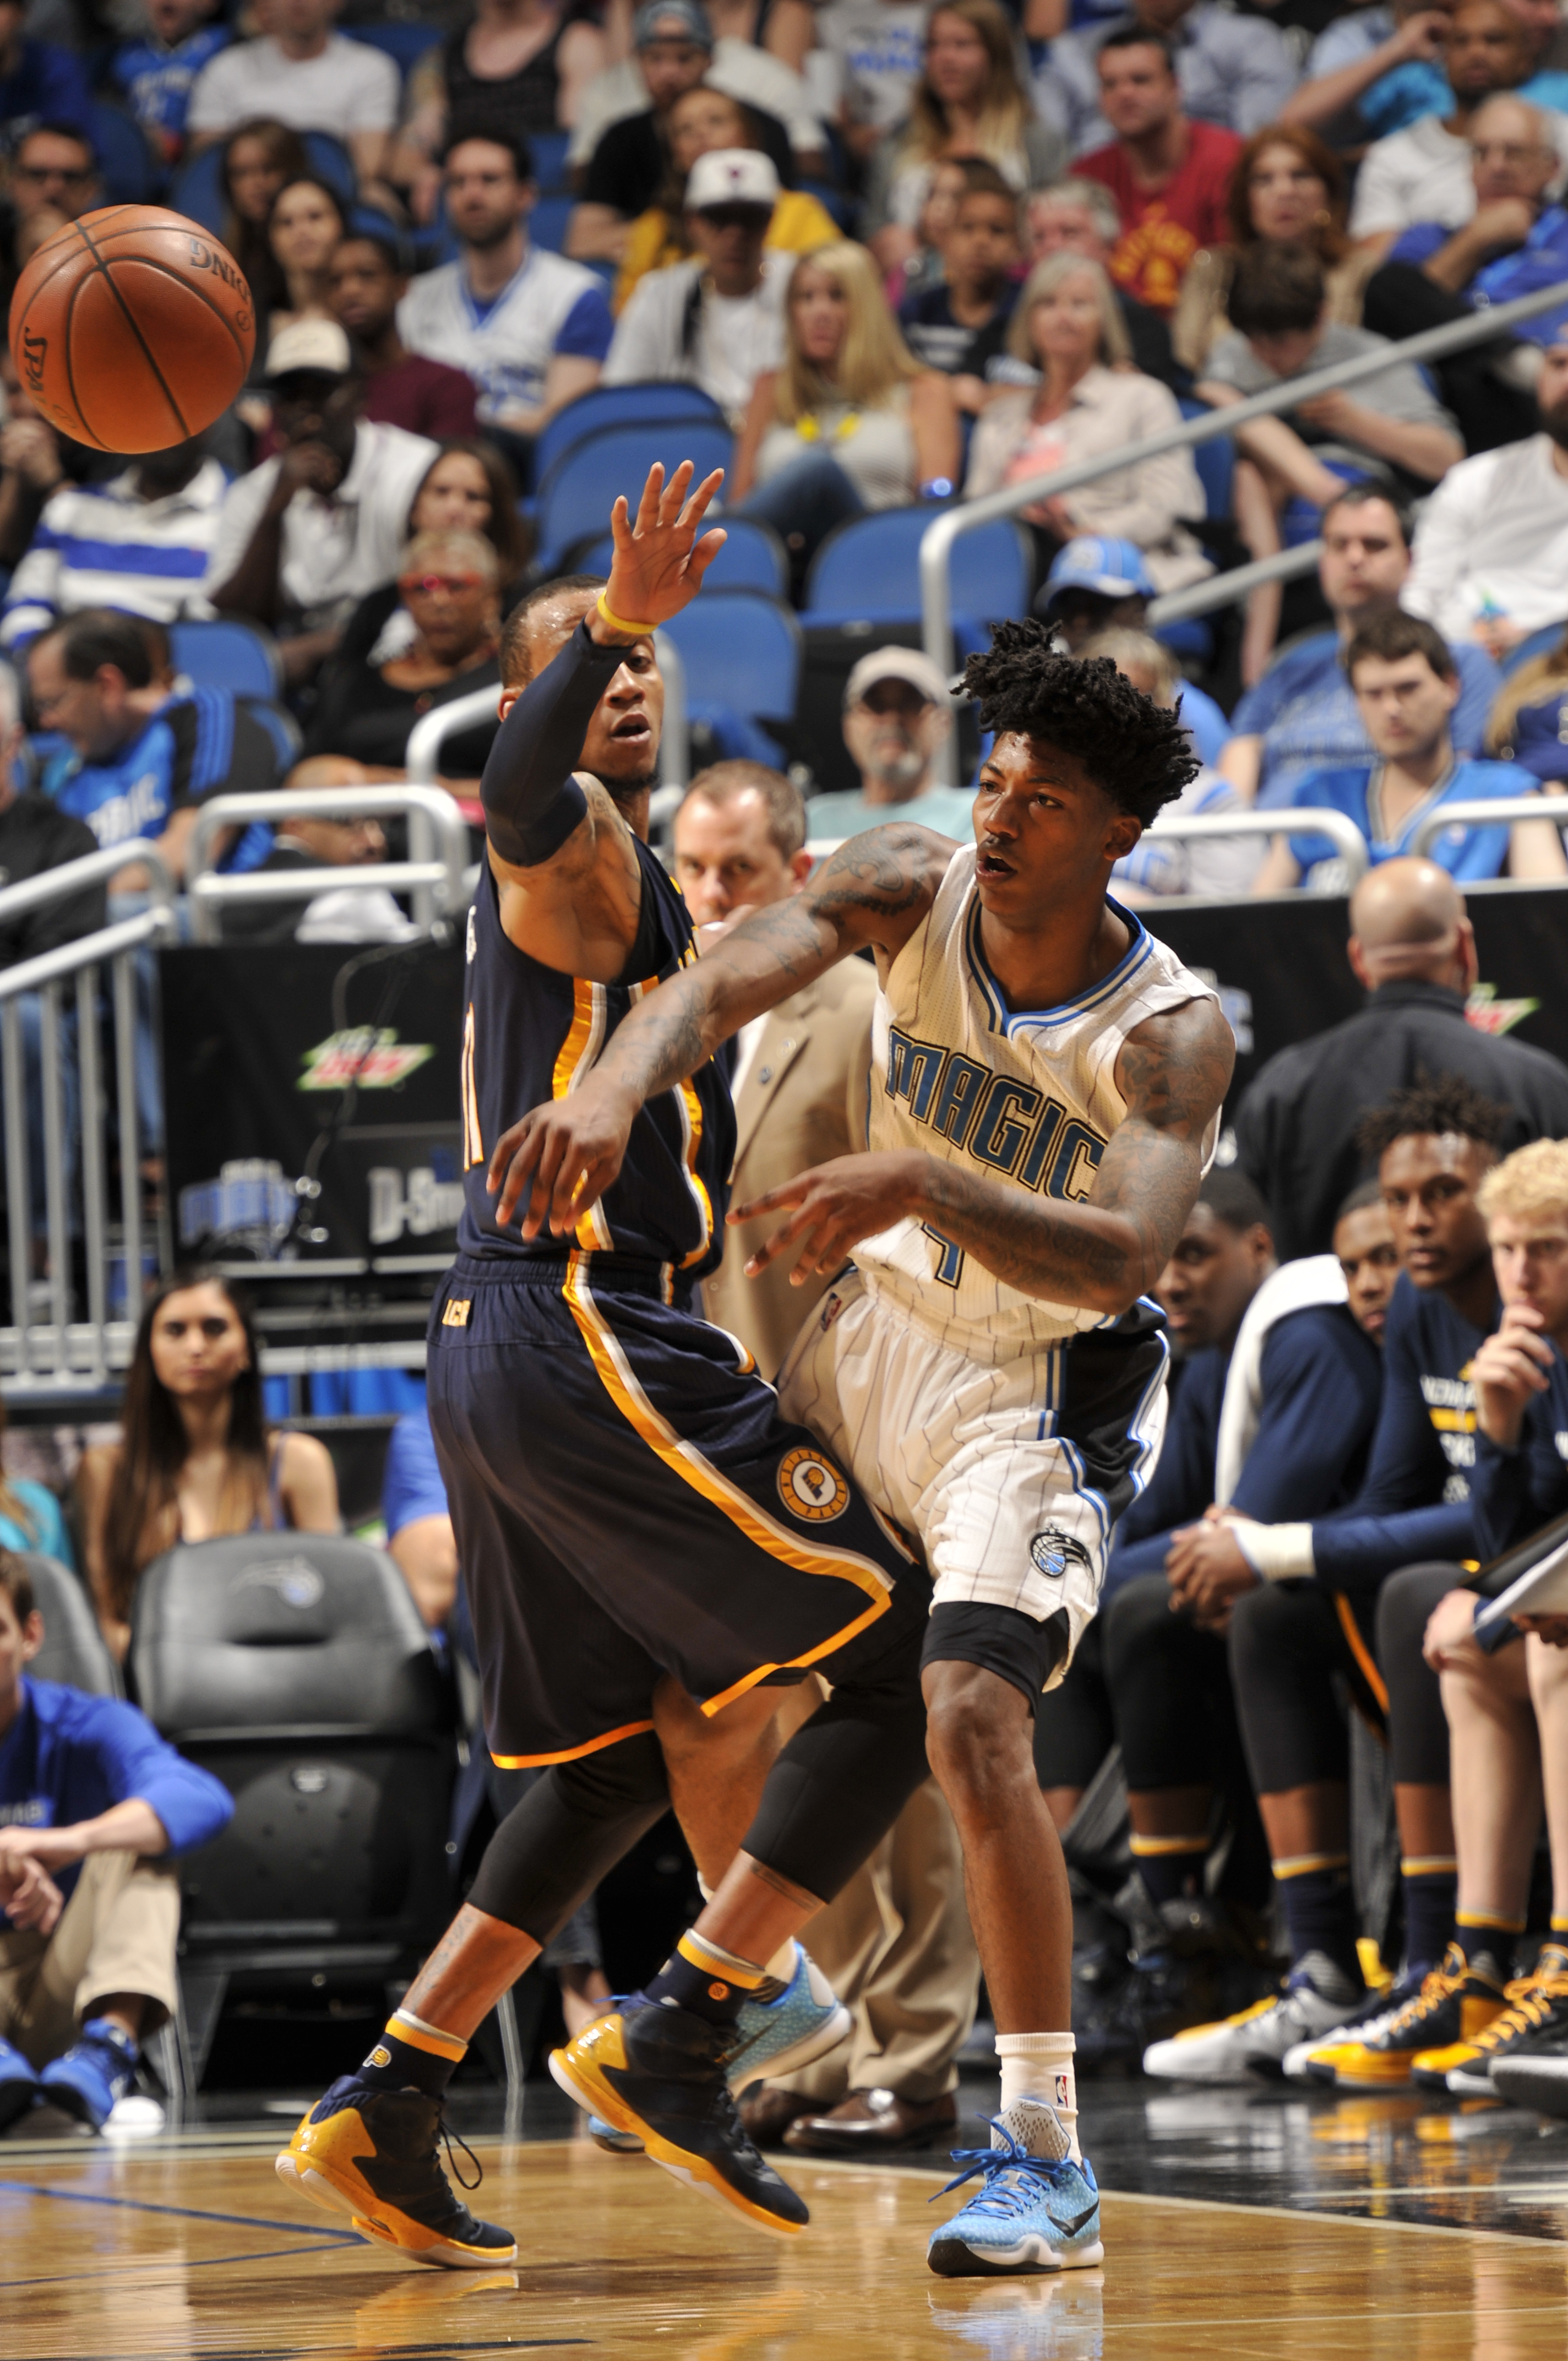 ORLANDO, FL - FEBRUARY 21: Elfrid Payton #4 of the Orlando Magic passes the ball against the Indiana Pacers  on February 21, 2016 at the Amway Center in Orlando, Florida. (Photo by Fernando Medina/NBAE via Getty Images)